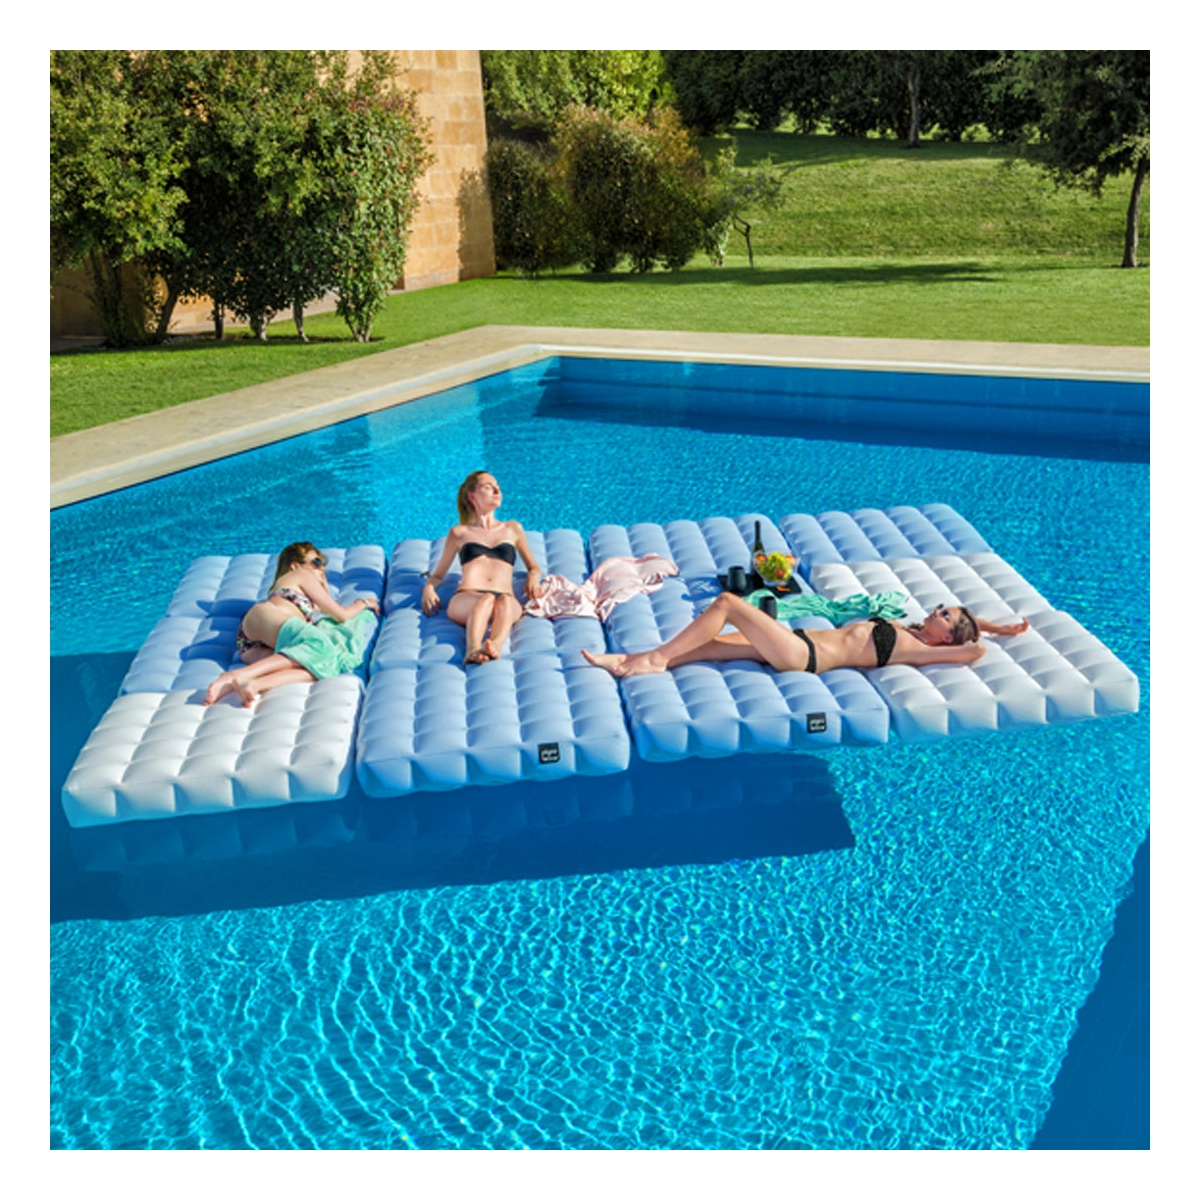 Cout piscine beton cout construction piscine beton 12 for Deco piscine espagne